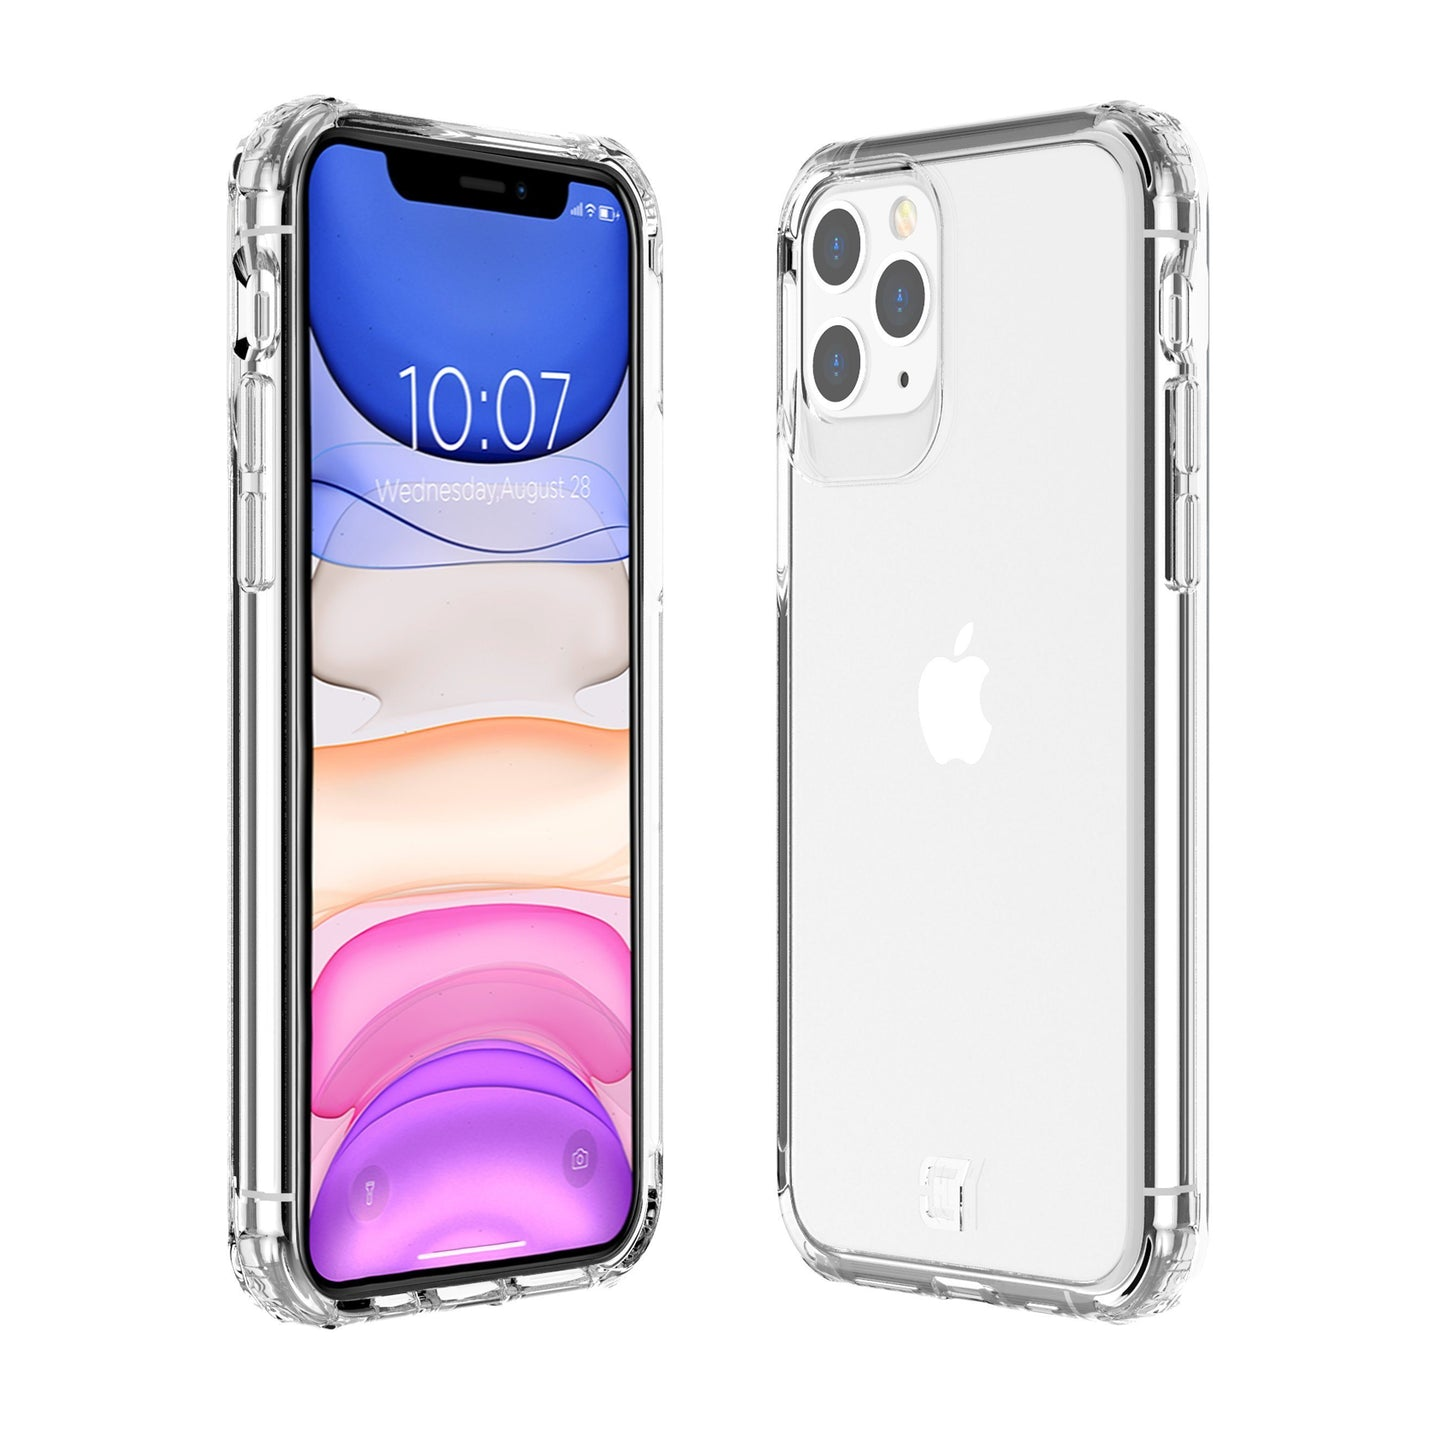 iPhone 11 Pro Slim Clear Protective Case